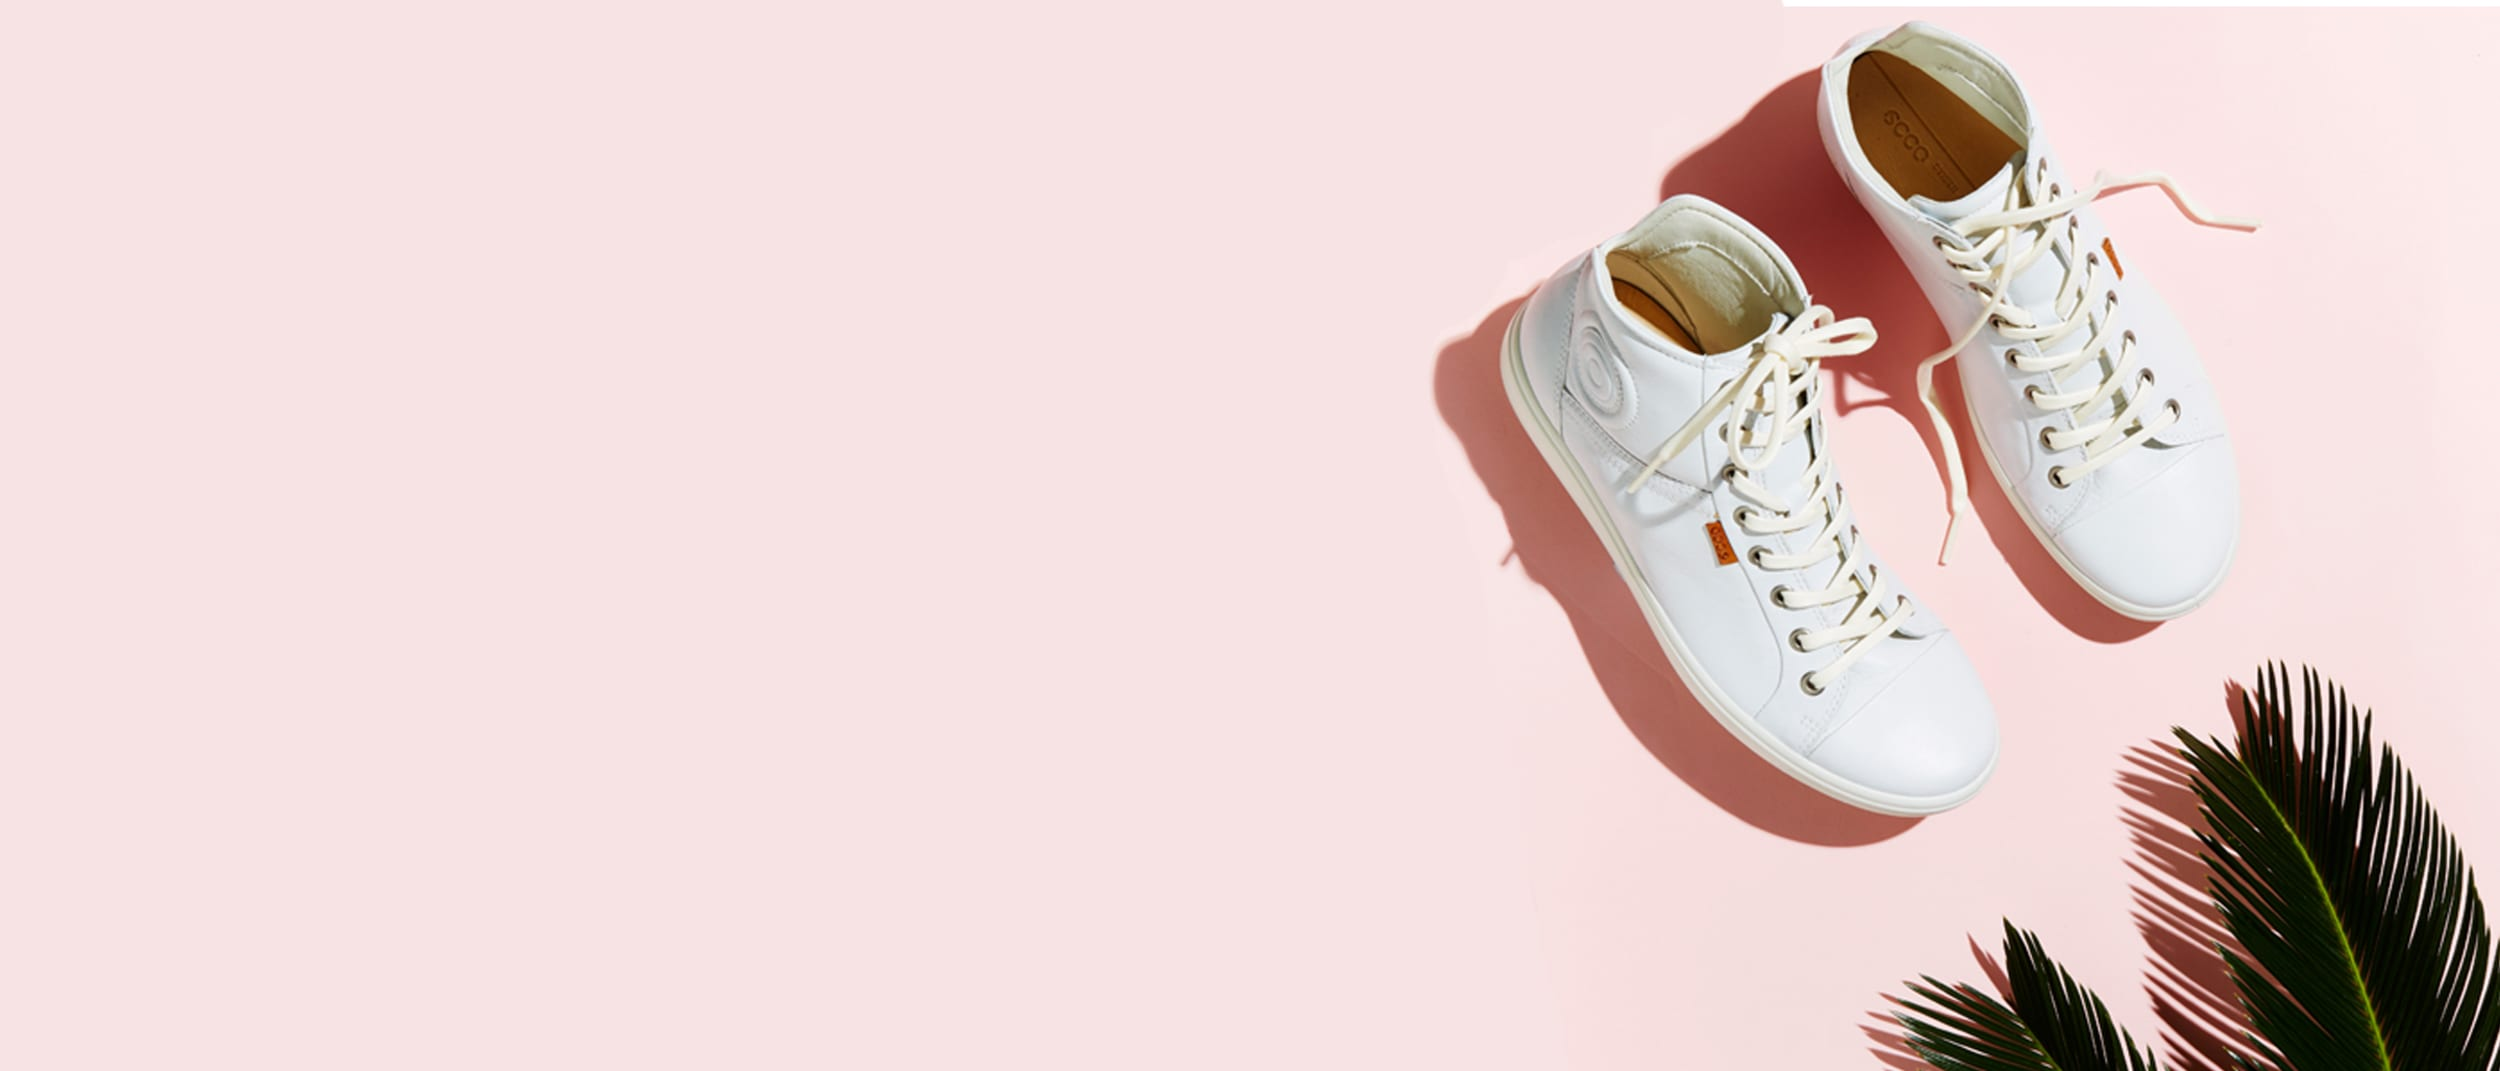 Fancy footwork: step up your sneaker game this season